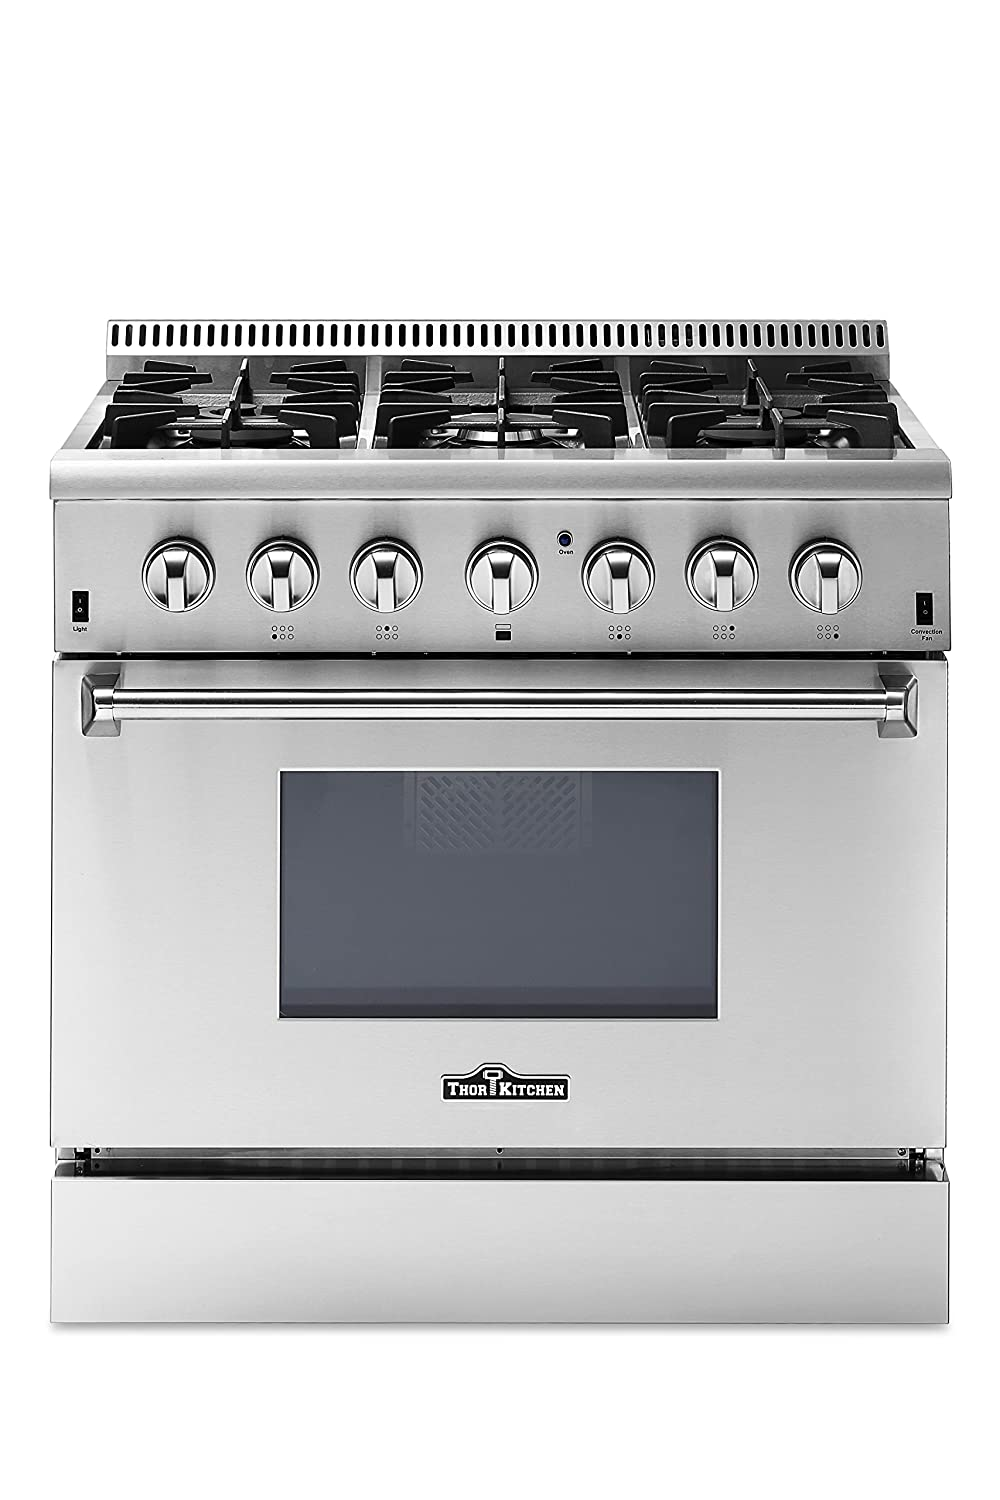 "Thor Kitchen 36"" - 5.2 cu. ft Dual Fuel Range - Freestanding Electric Oven with 6 Burners Gas Range and Convection Blower Fan - Stainless Steel - HRD3606U-1 (Without LP Conversion Kit)"